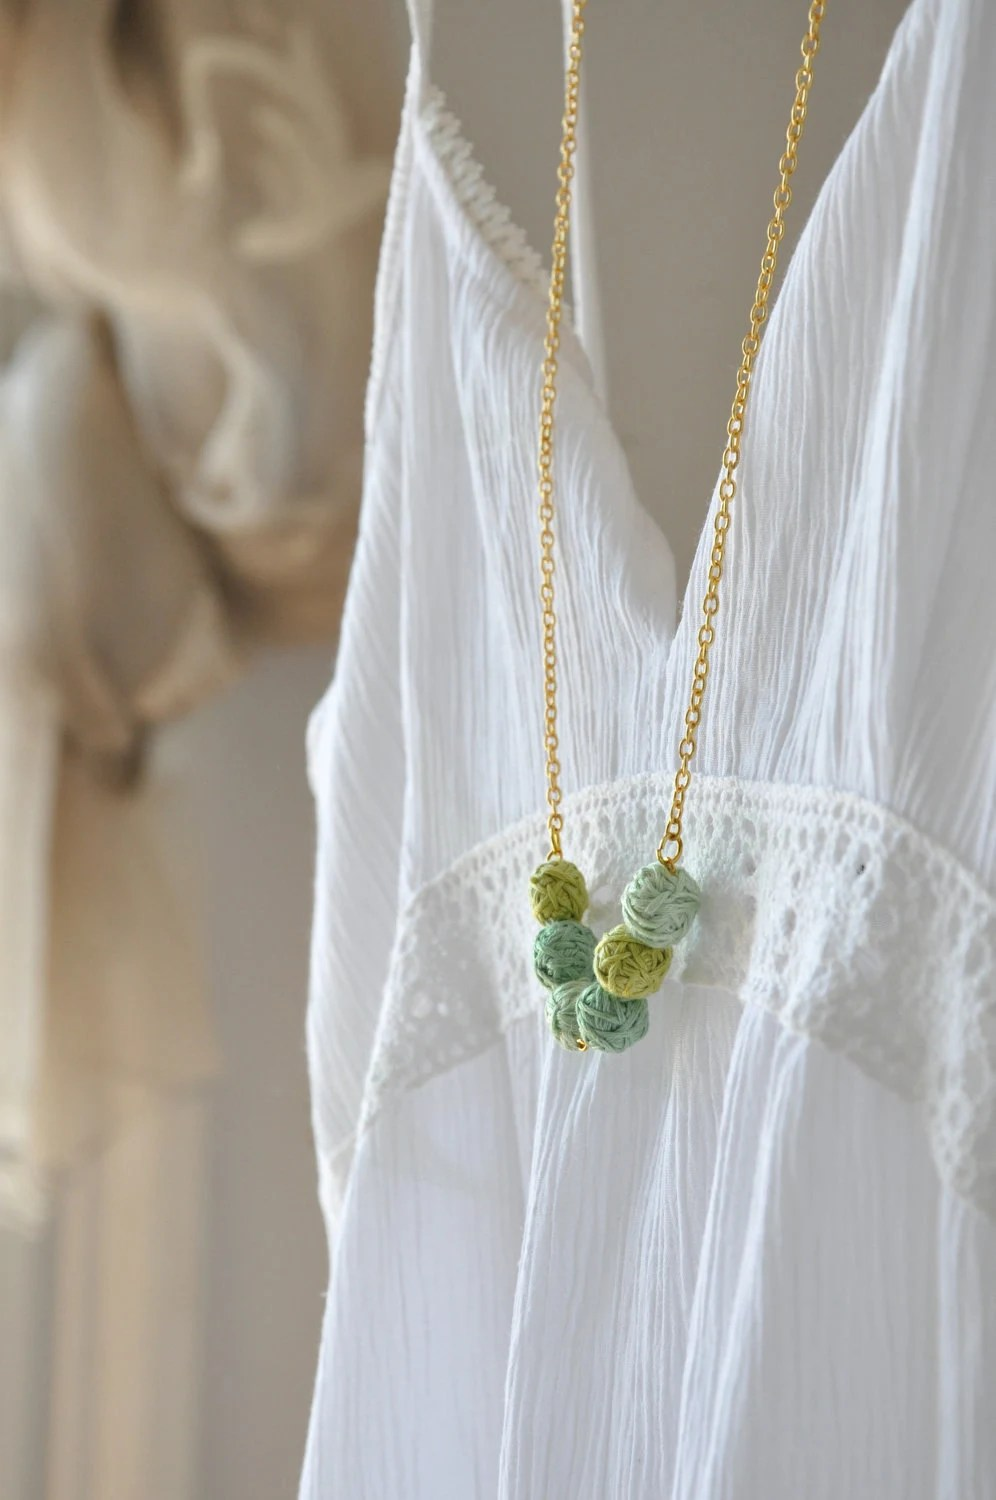 Mint Green Necklace Statement Nature Gold Necklace Handmade Beads Fall Fashion  Autumn Accessories Bridesmade  Fabric Textile Jewelry - stellacreations